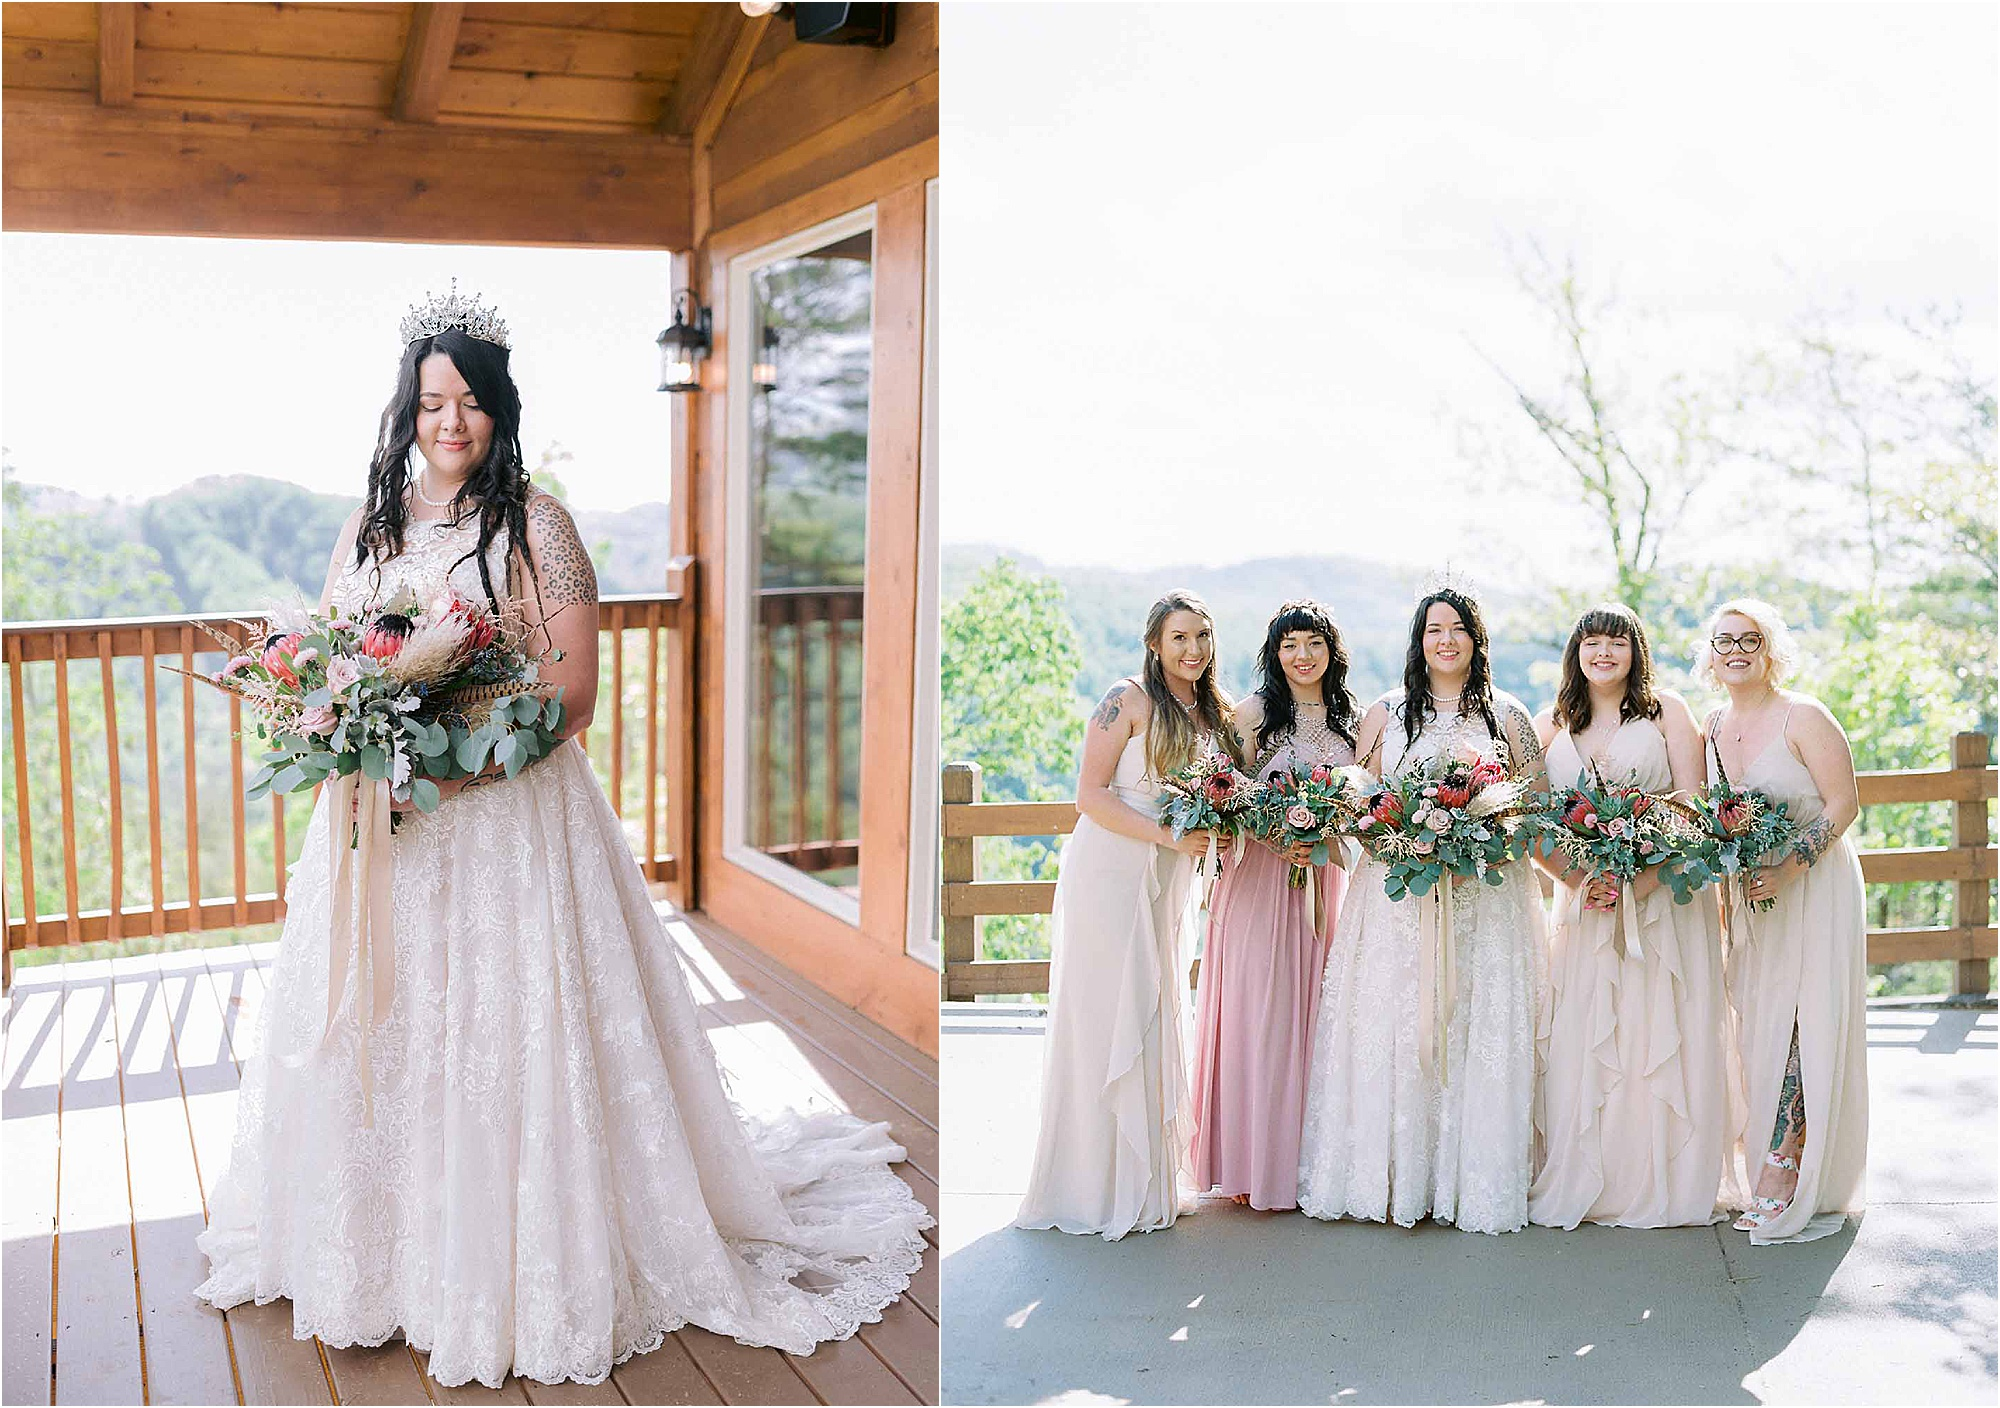 bride with crown and bridesmaids in pink dresses